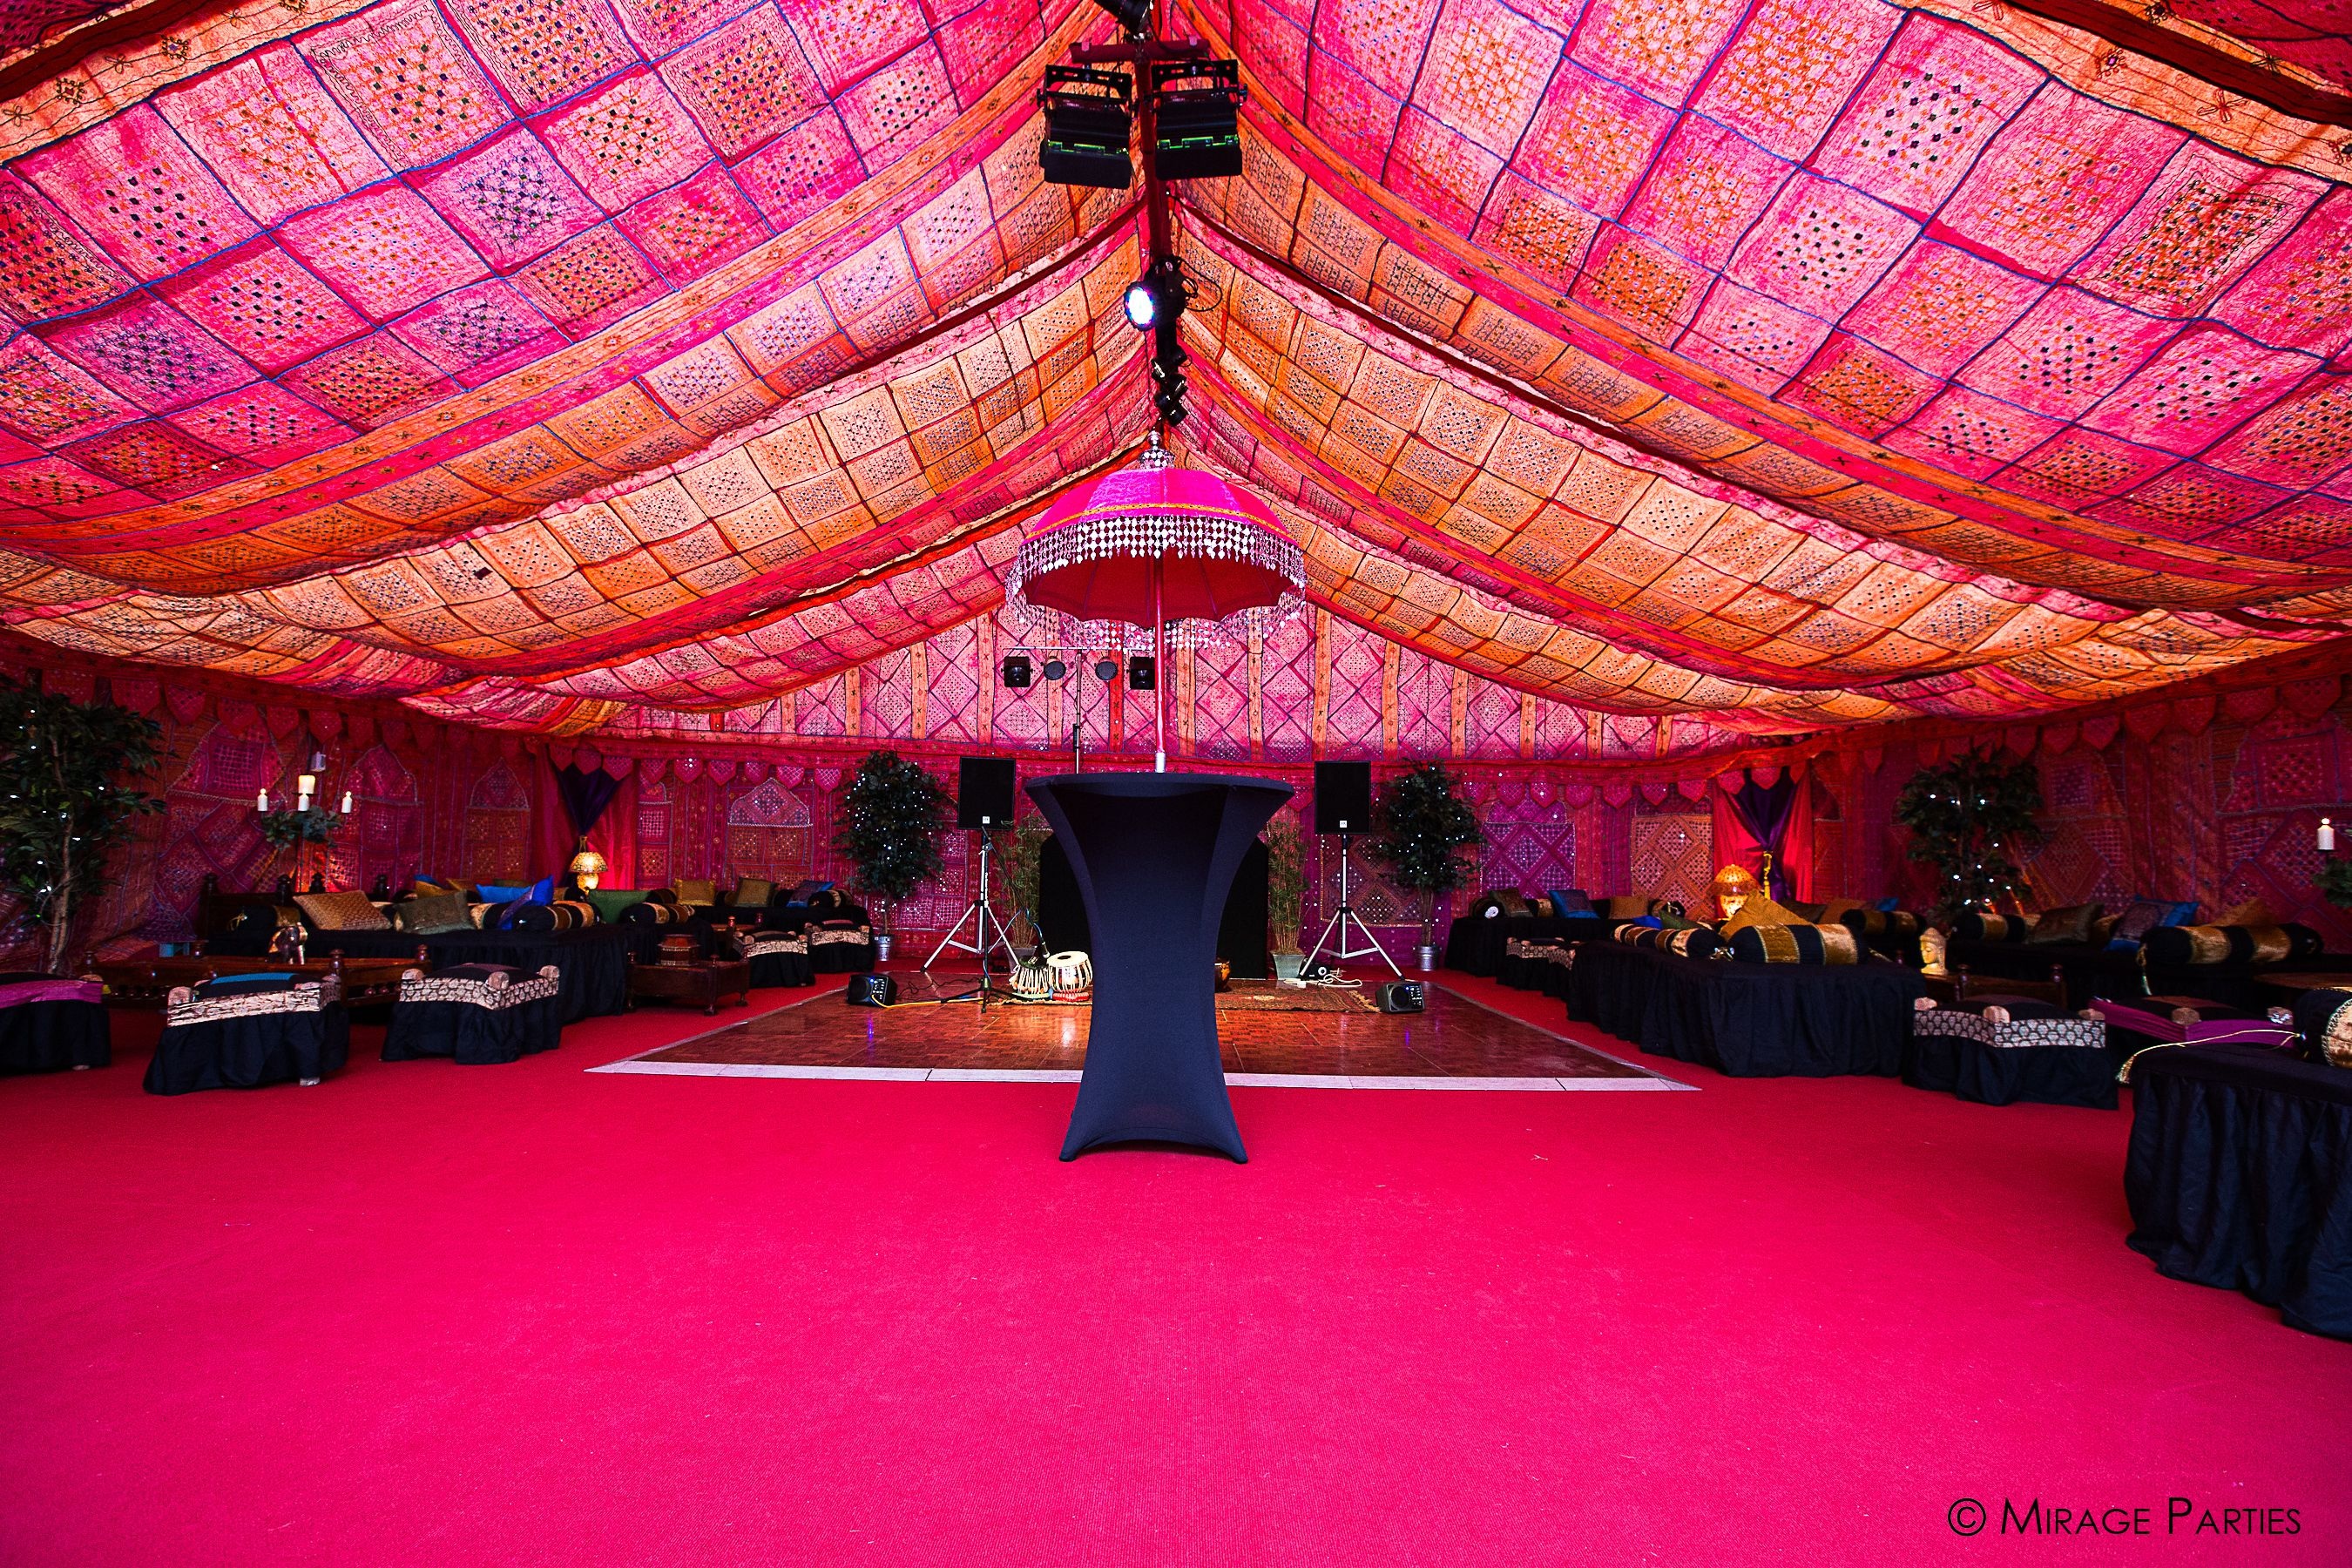 The Bombay Boudoir Bollywood Interior Transforms This Ordinary Clearspan Marquee